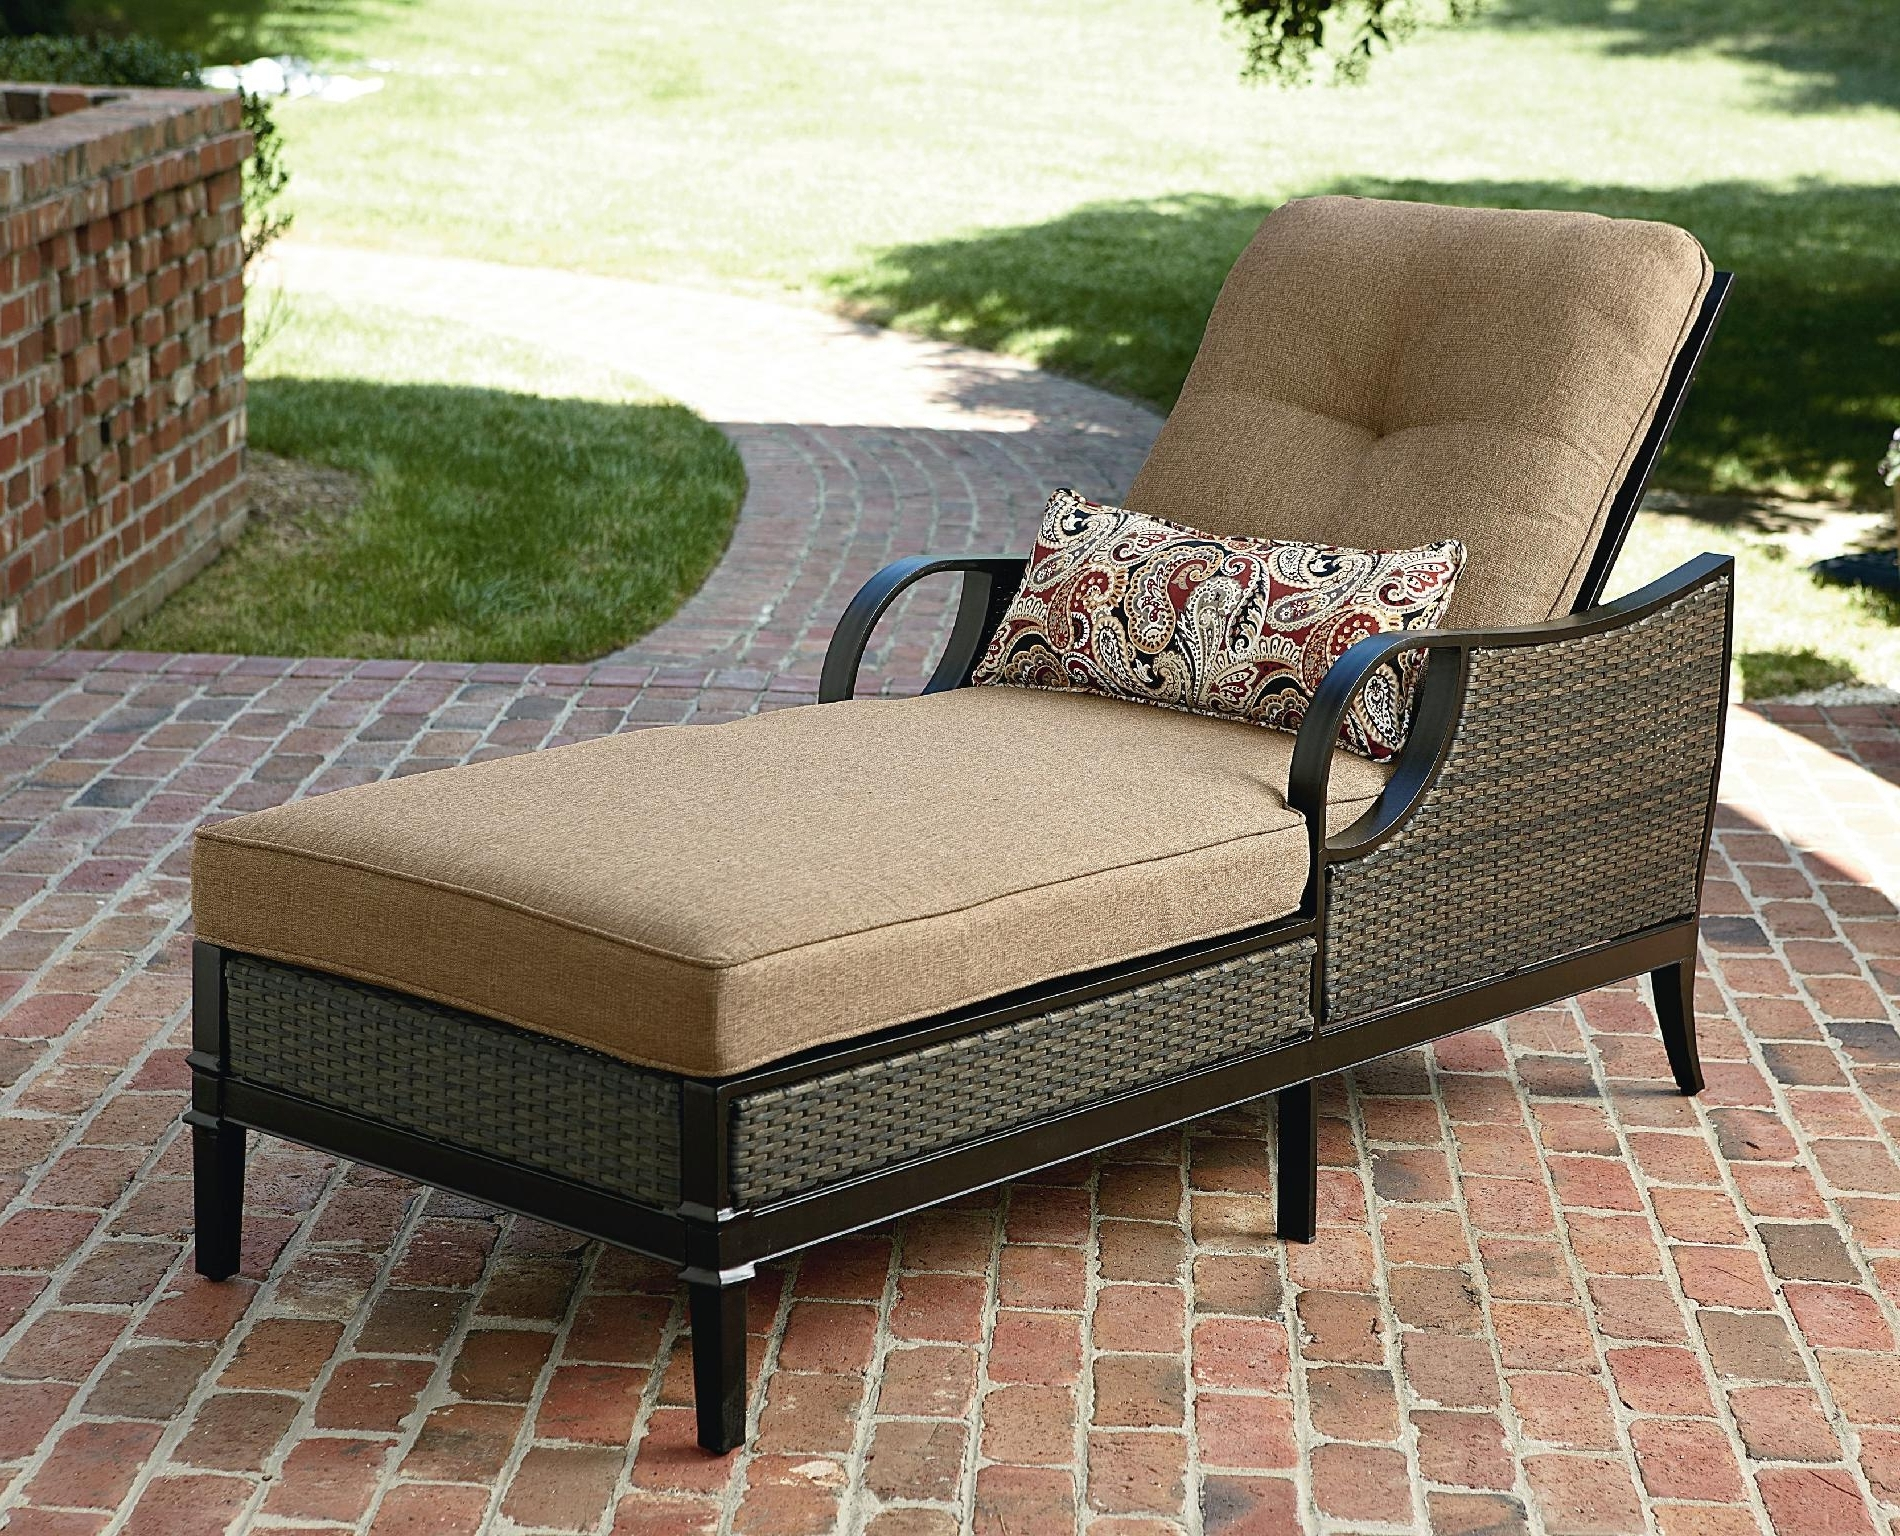 Trendy Patio Furniture Chaise Lounge Chairs • Lounge Chairs Ideas Regarding Chaise Lounge Sets (View 13 of 15)